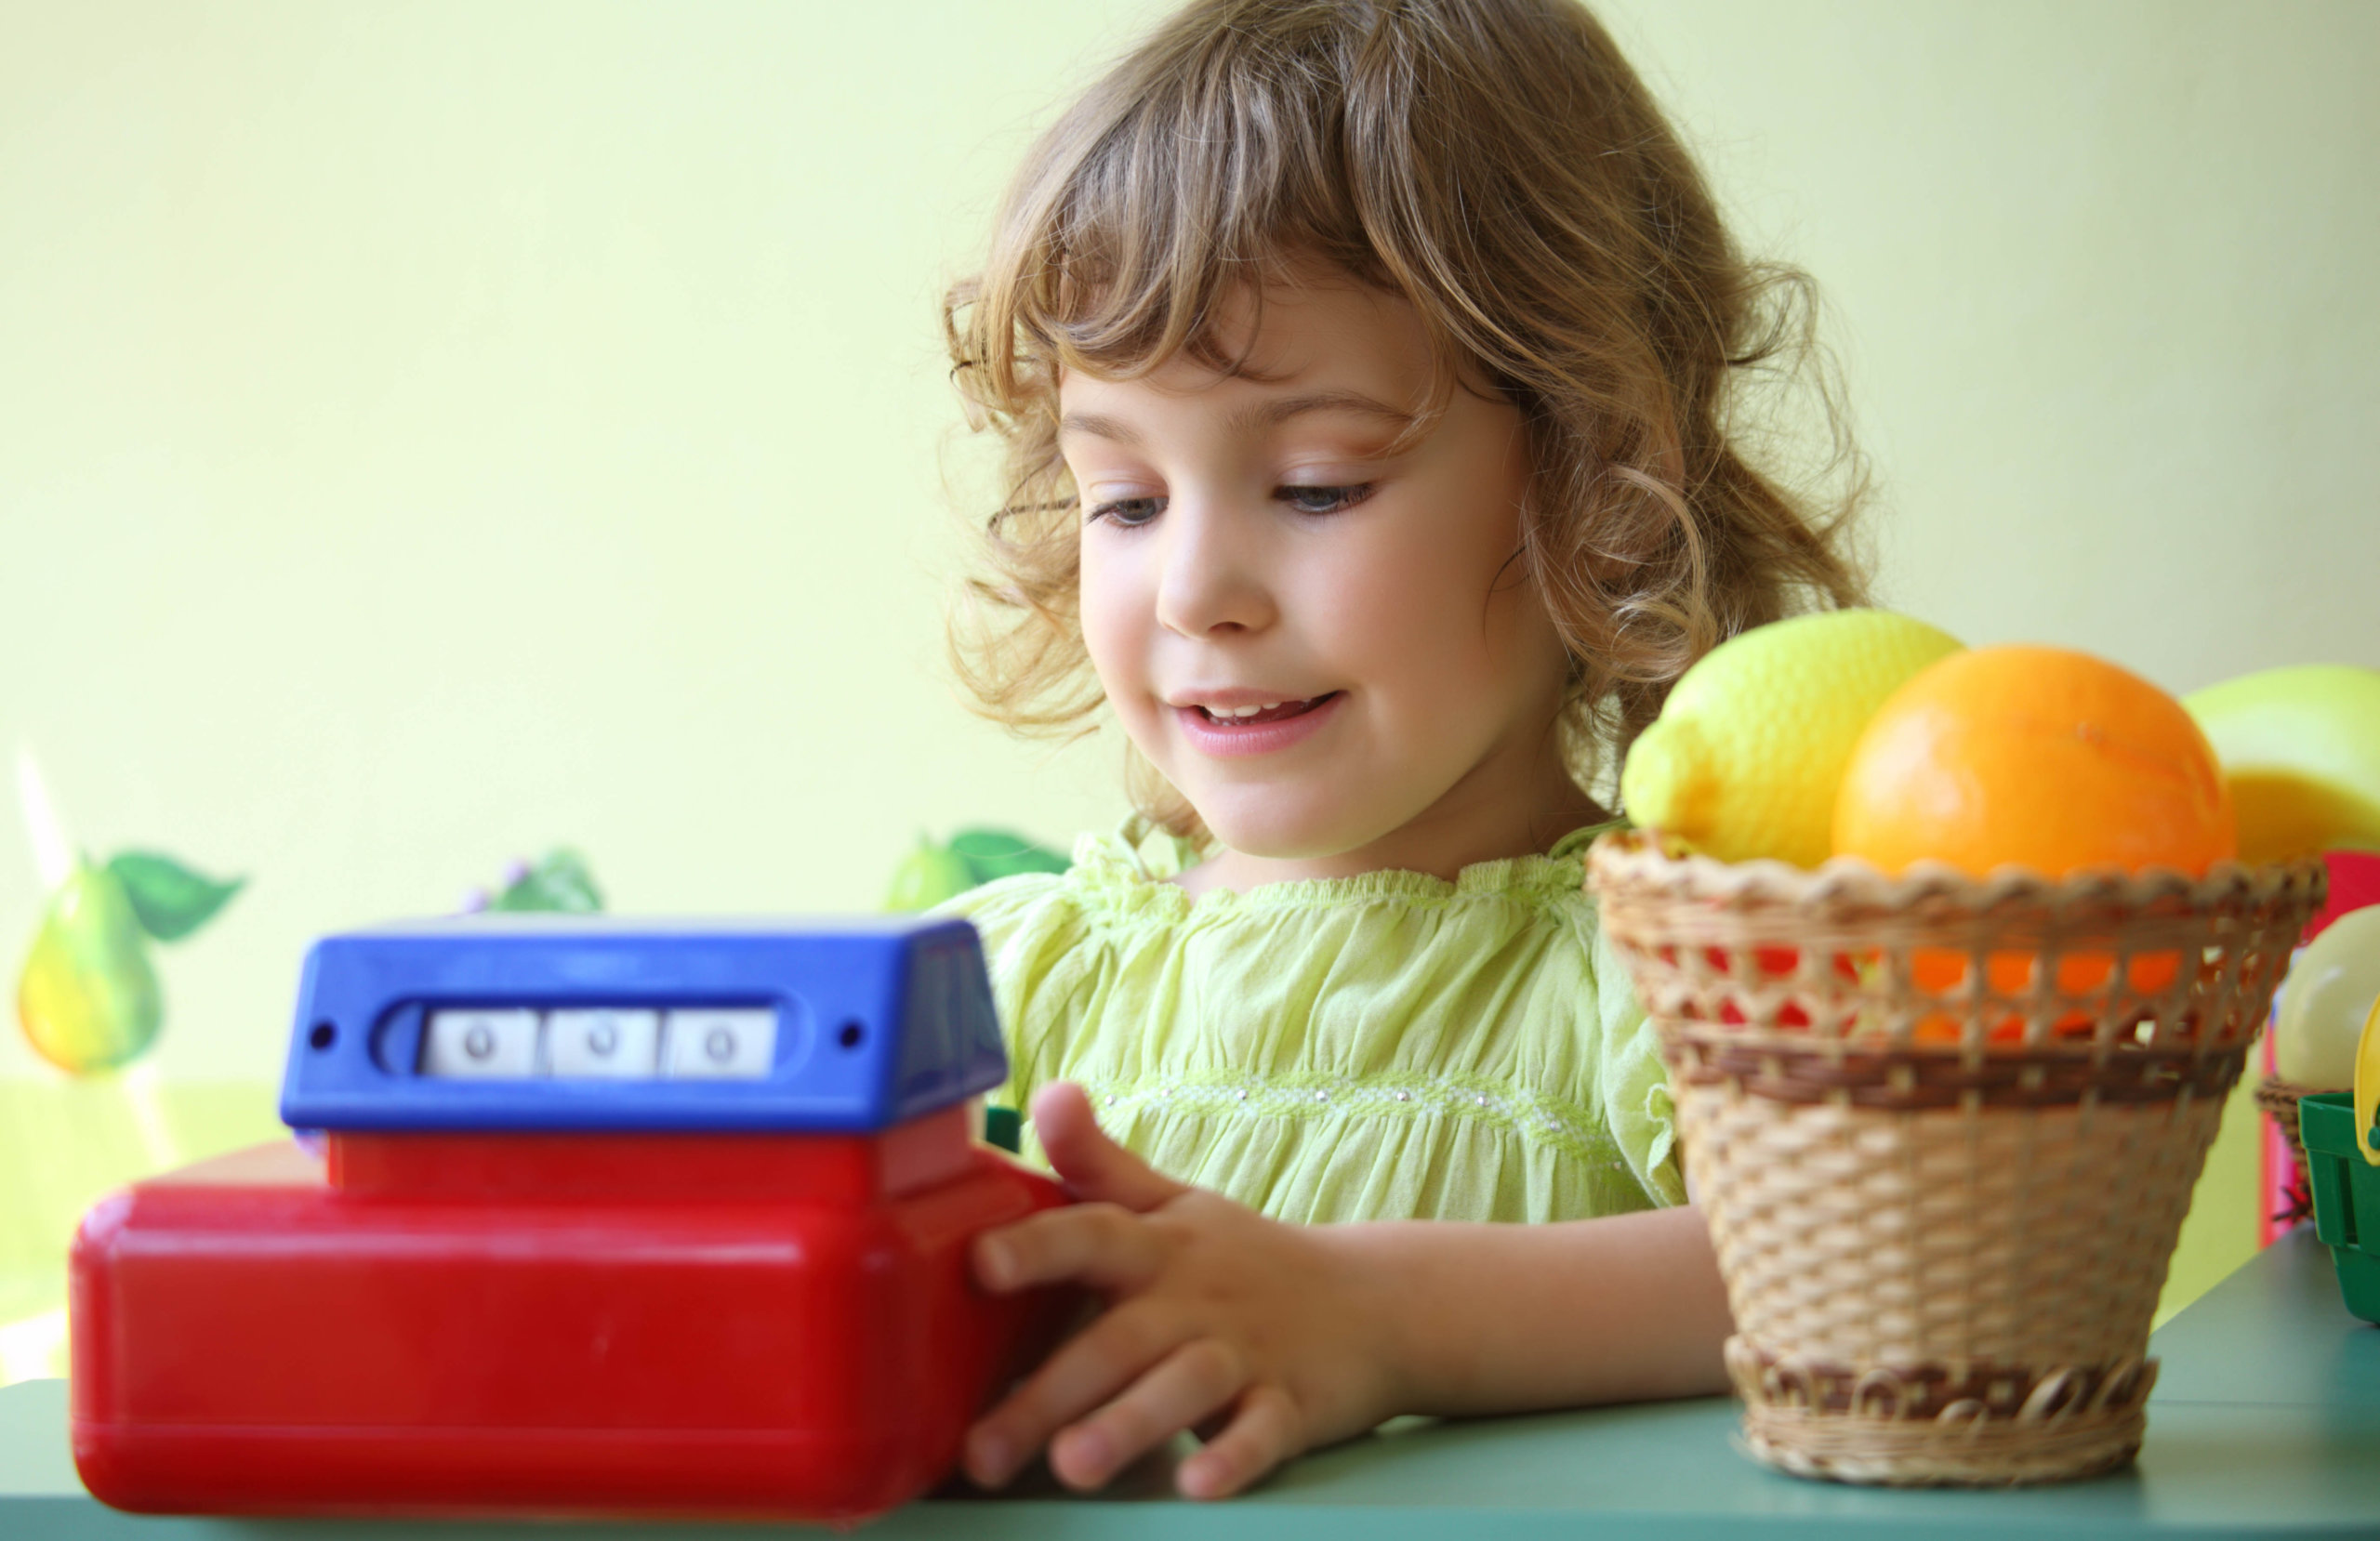 12 Best Toy Cash Registers for Kids